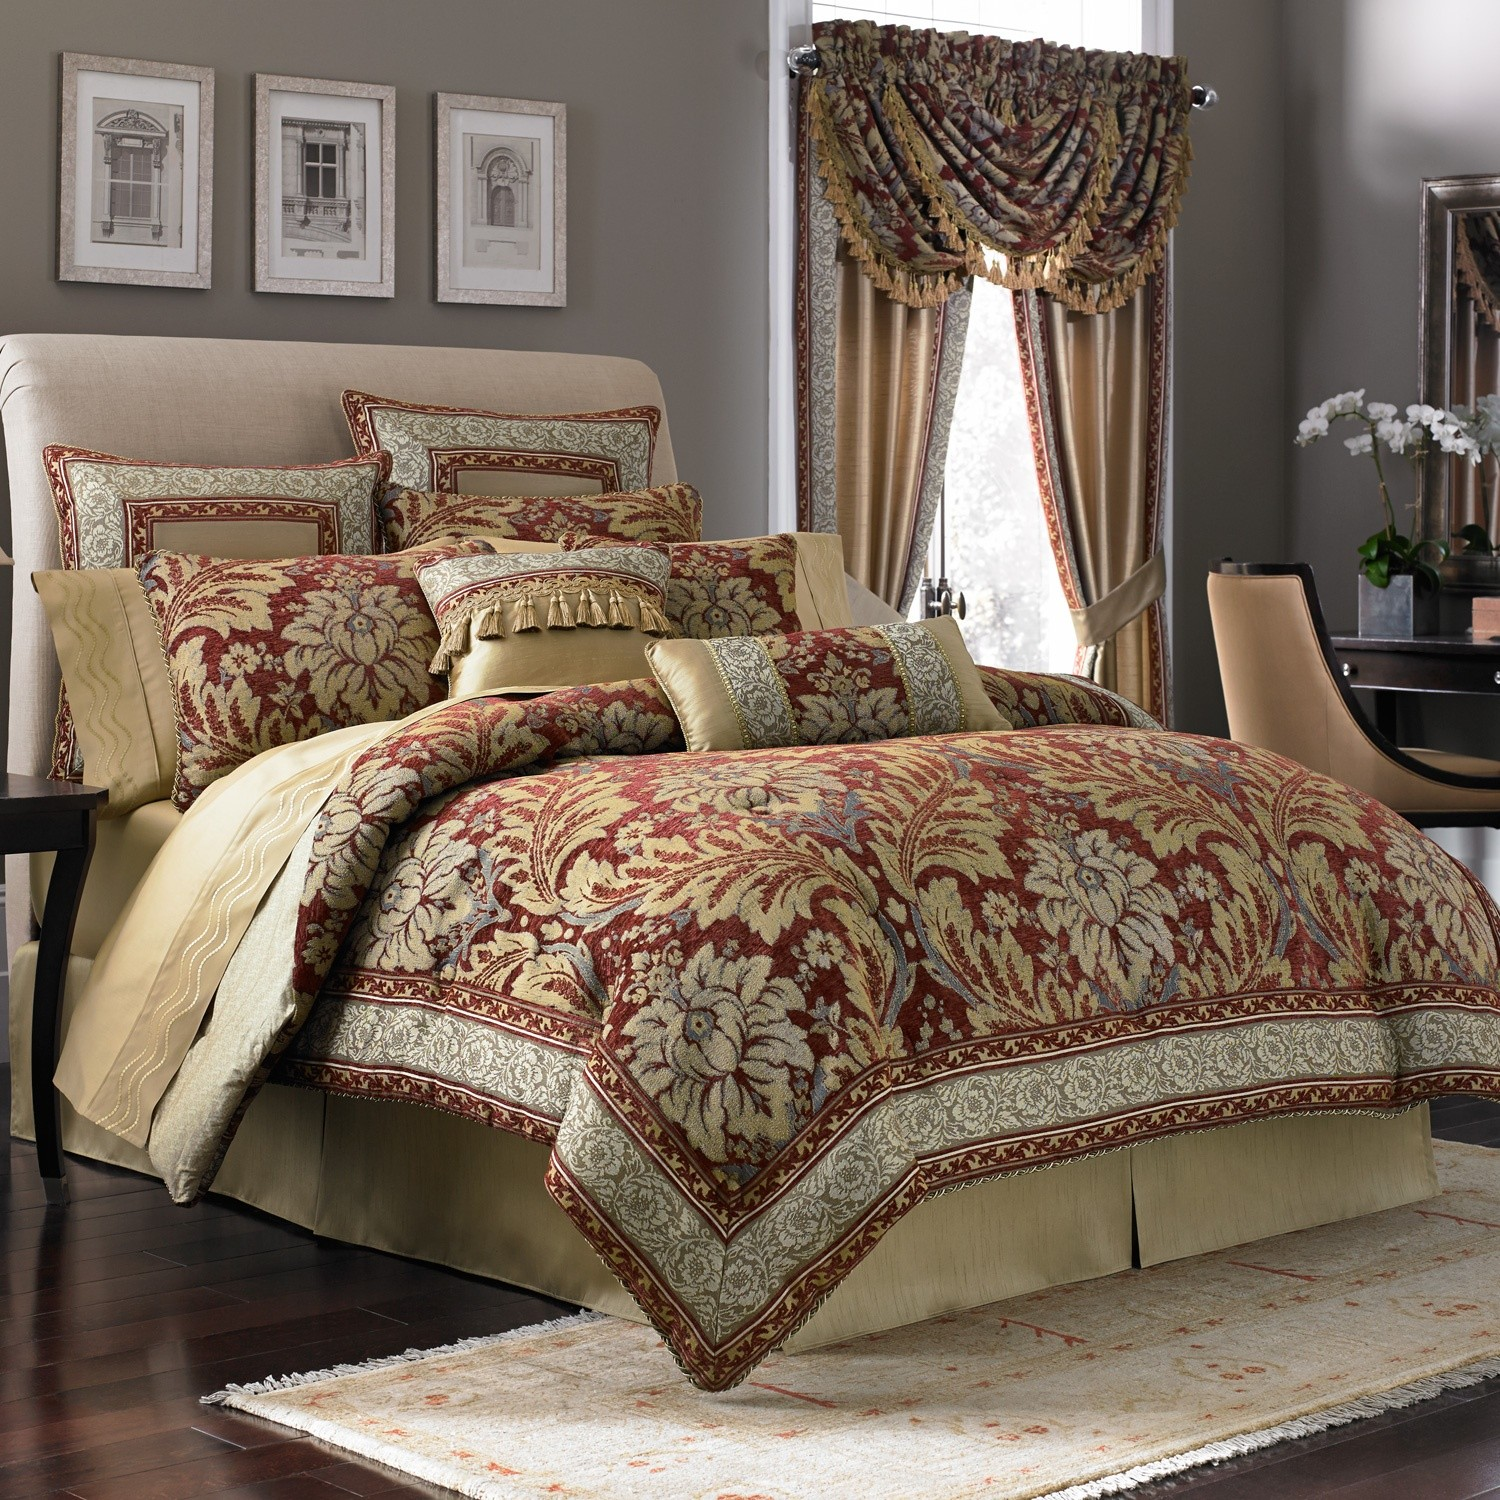 Inspiring California King Bedding For Bedroom Design With California King Bed Frame